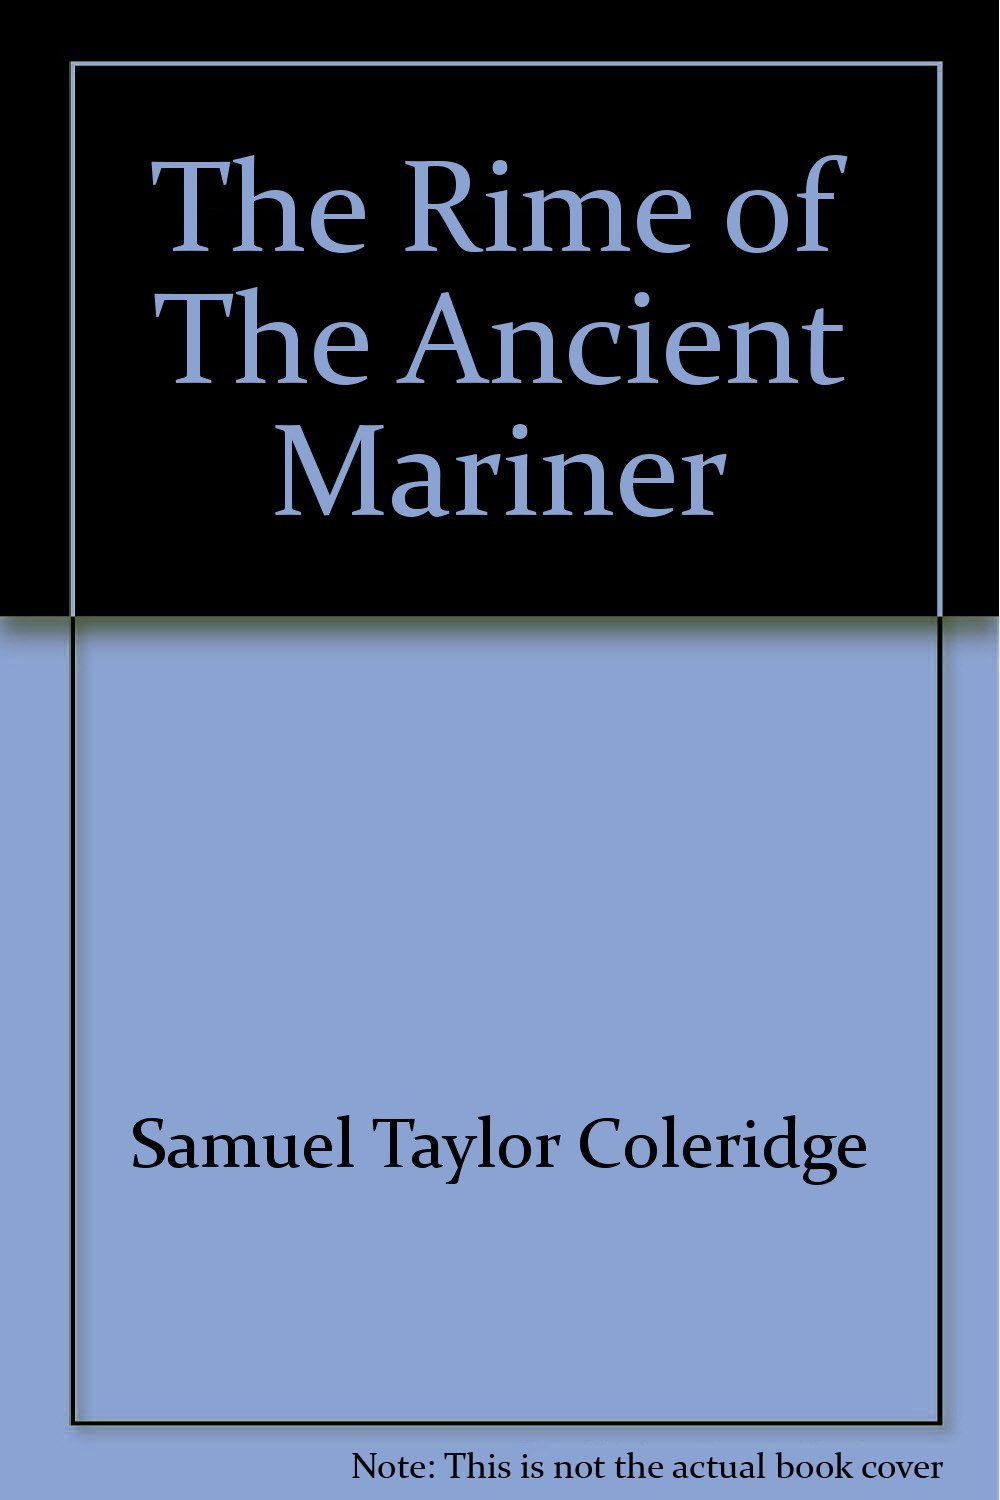 The Rime of The Ancient Mariner [Hardcover] [Jan 01, 1977] Samuel Taylor Cole...